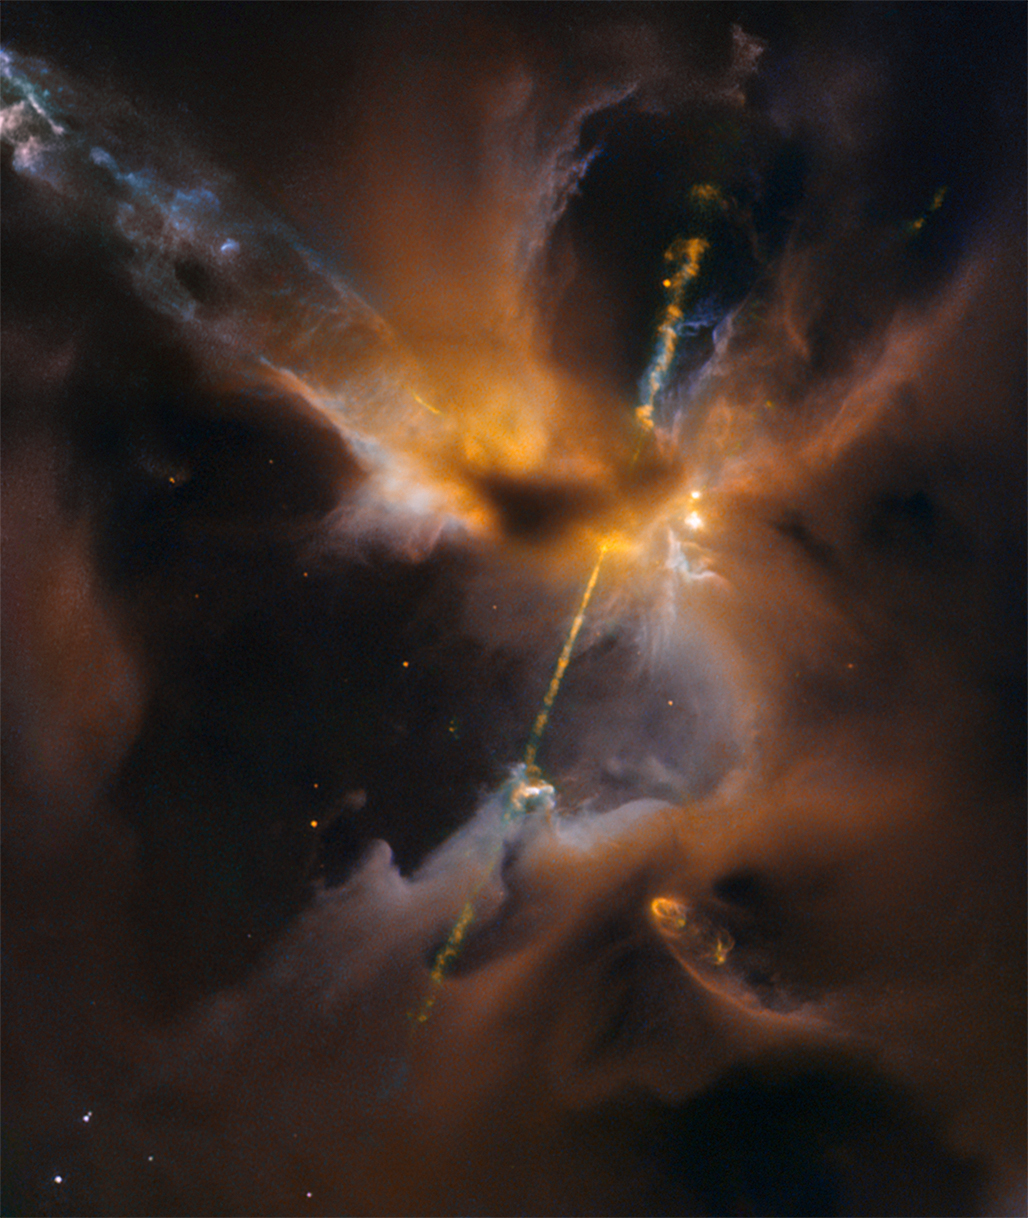 Herbig-Haro Object HH 24